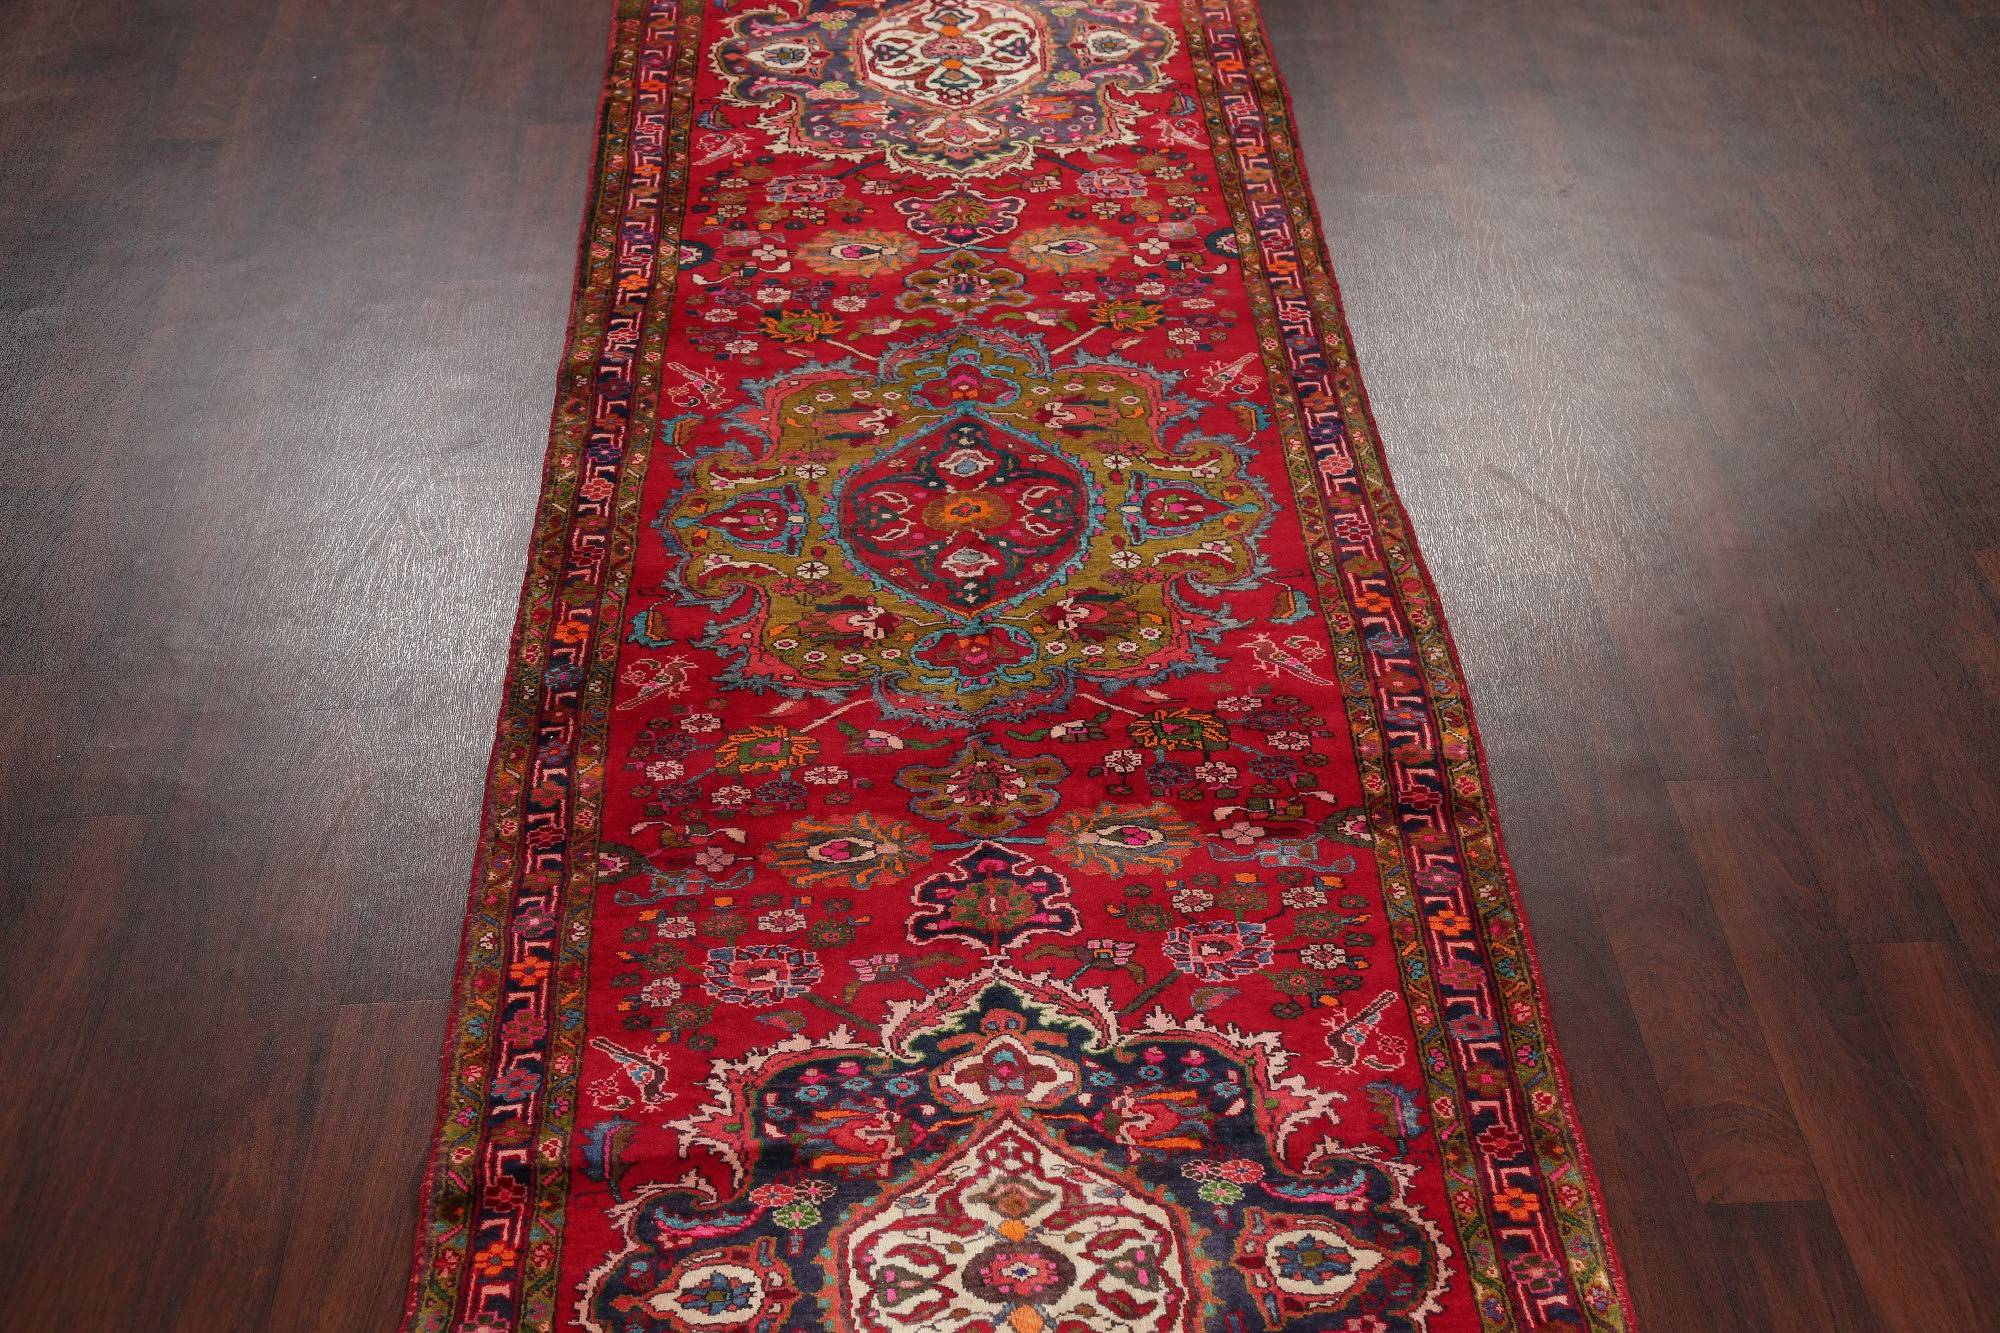 Animal Pictorial Heriz Persian Hand-Knotted 4x14 Wool Runner Rug